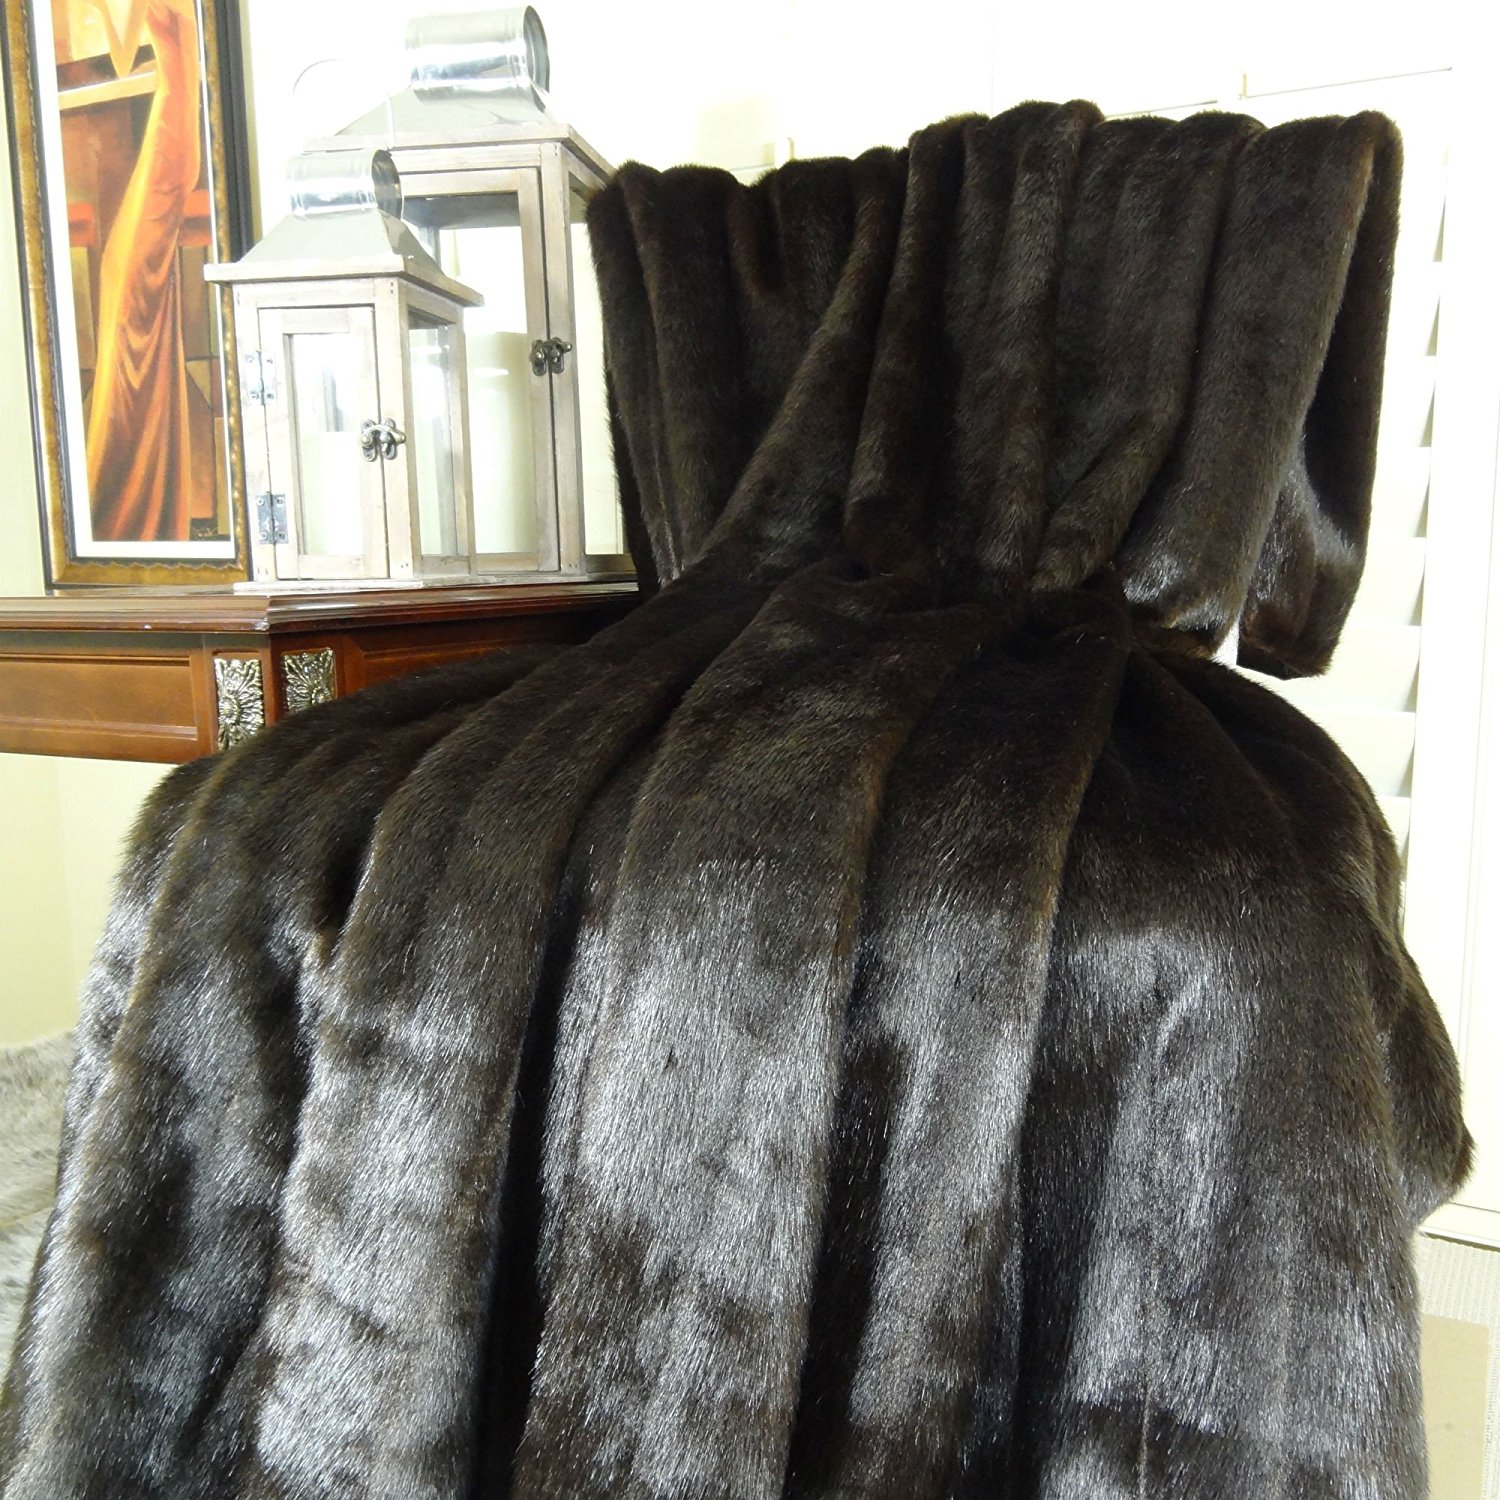 Thomas Collection Handmade in USA Luxury Faux Fur Throw Blanket Bedspread for Couch Sofa Bed, Dark Brown Mink - 16425